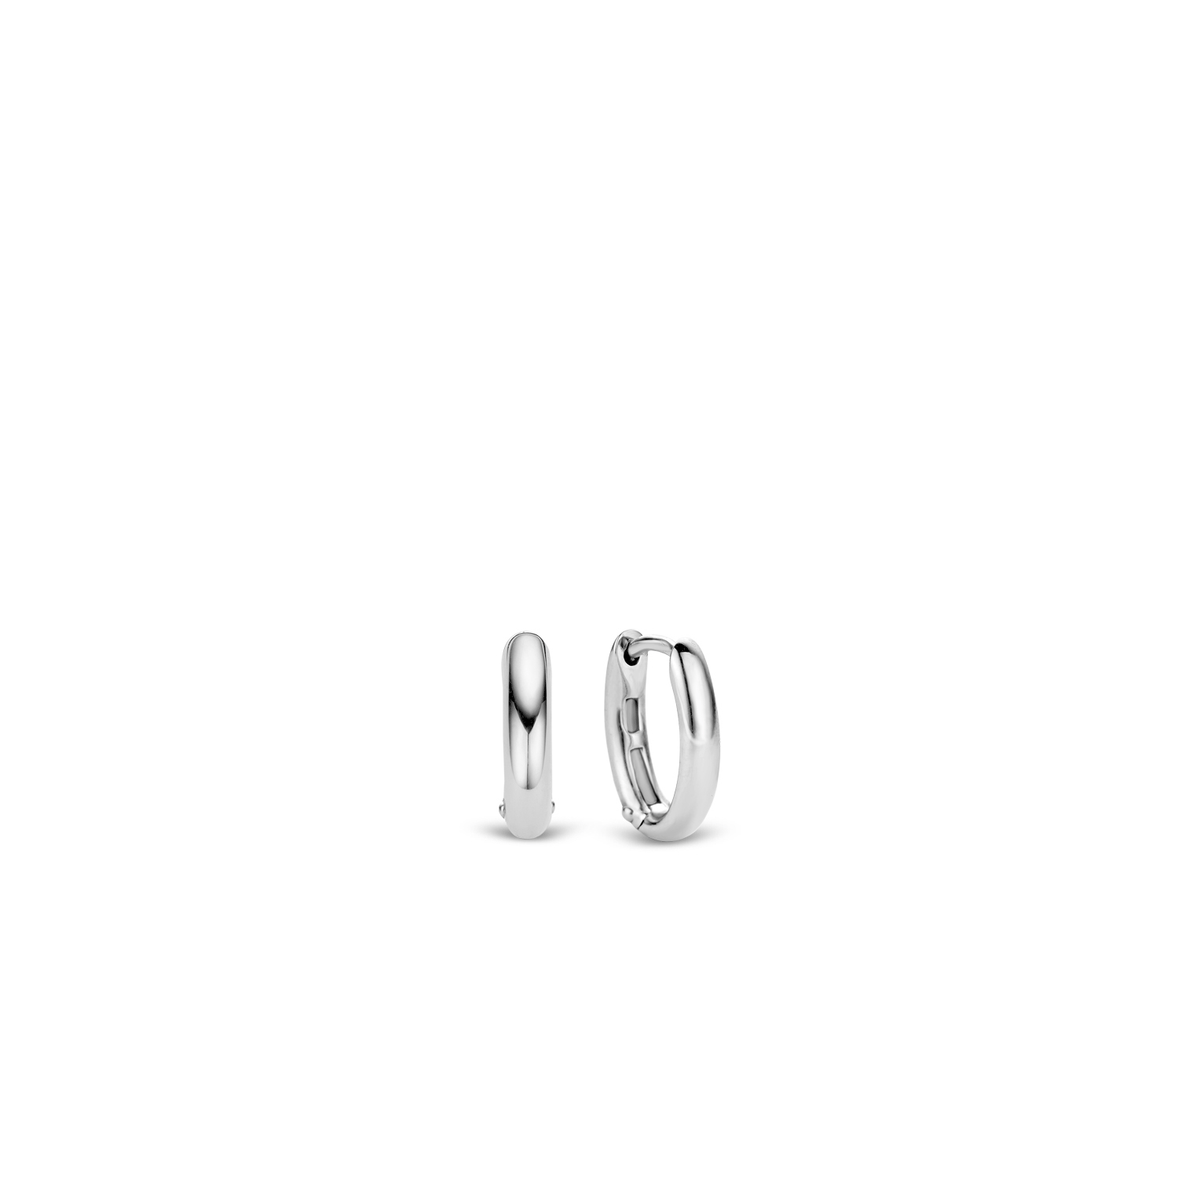 TI SENTO - Milano Earrings 7759SI